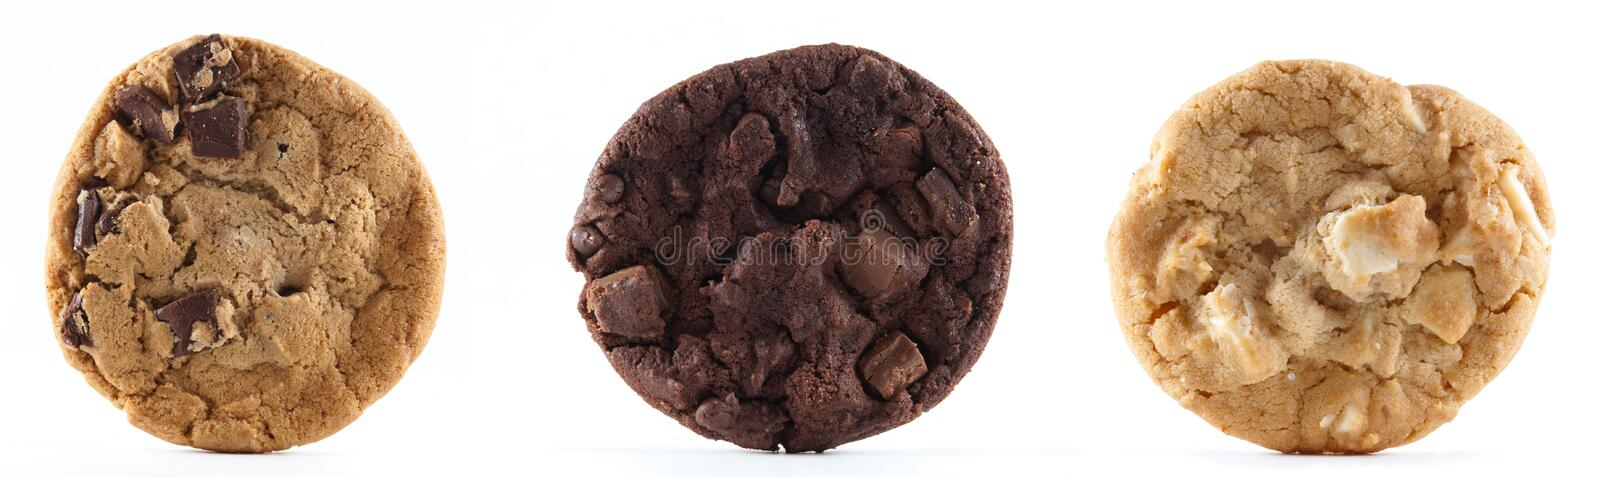 Three cookies against an isolated background royalty free stock photos